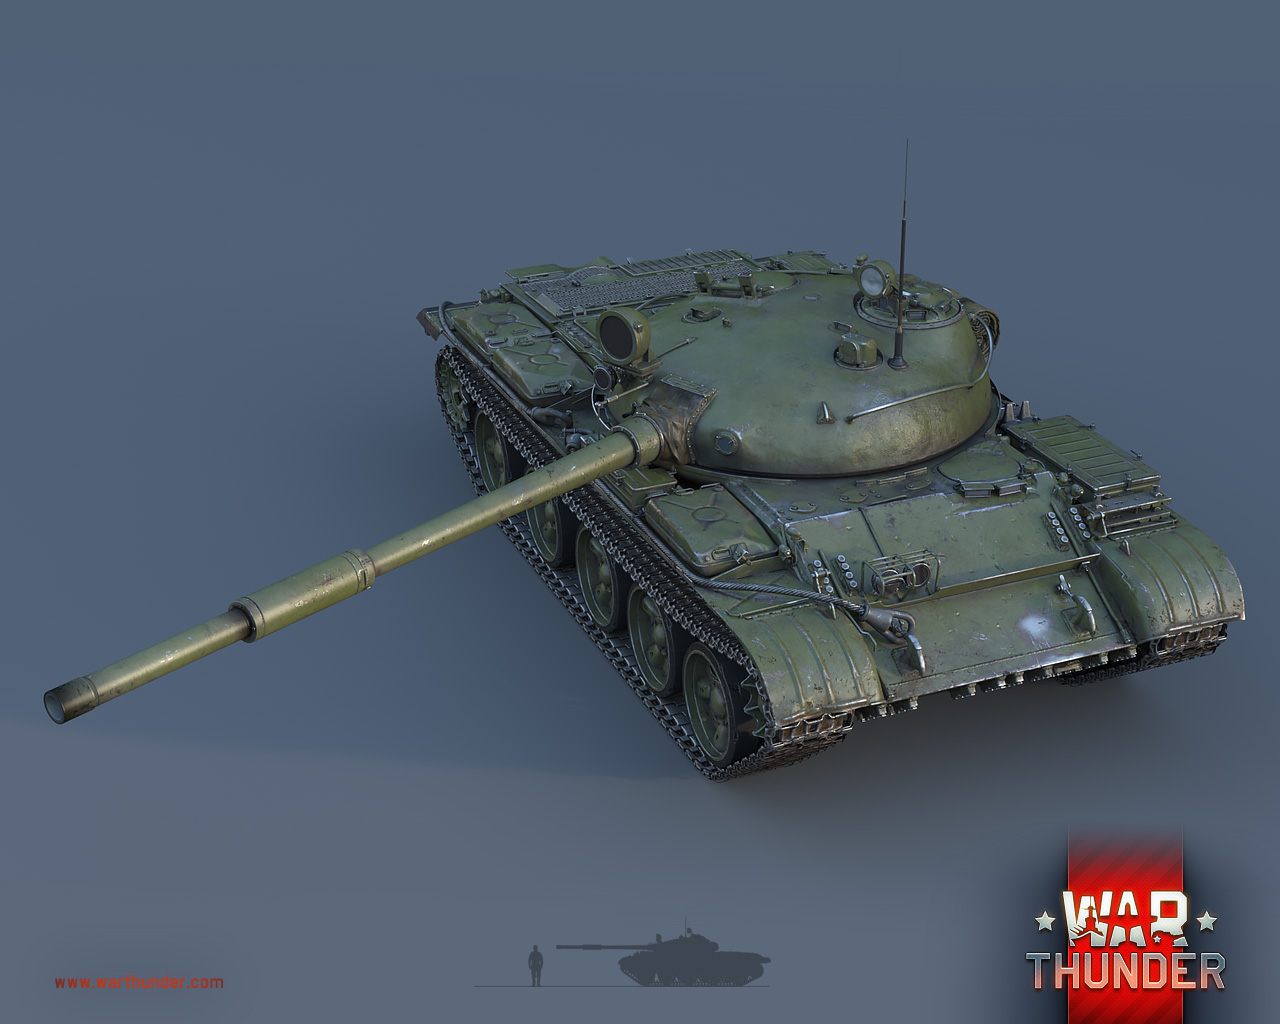 War thunder download is slow